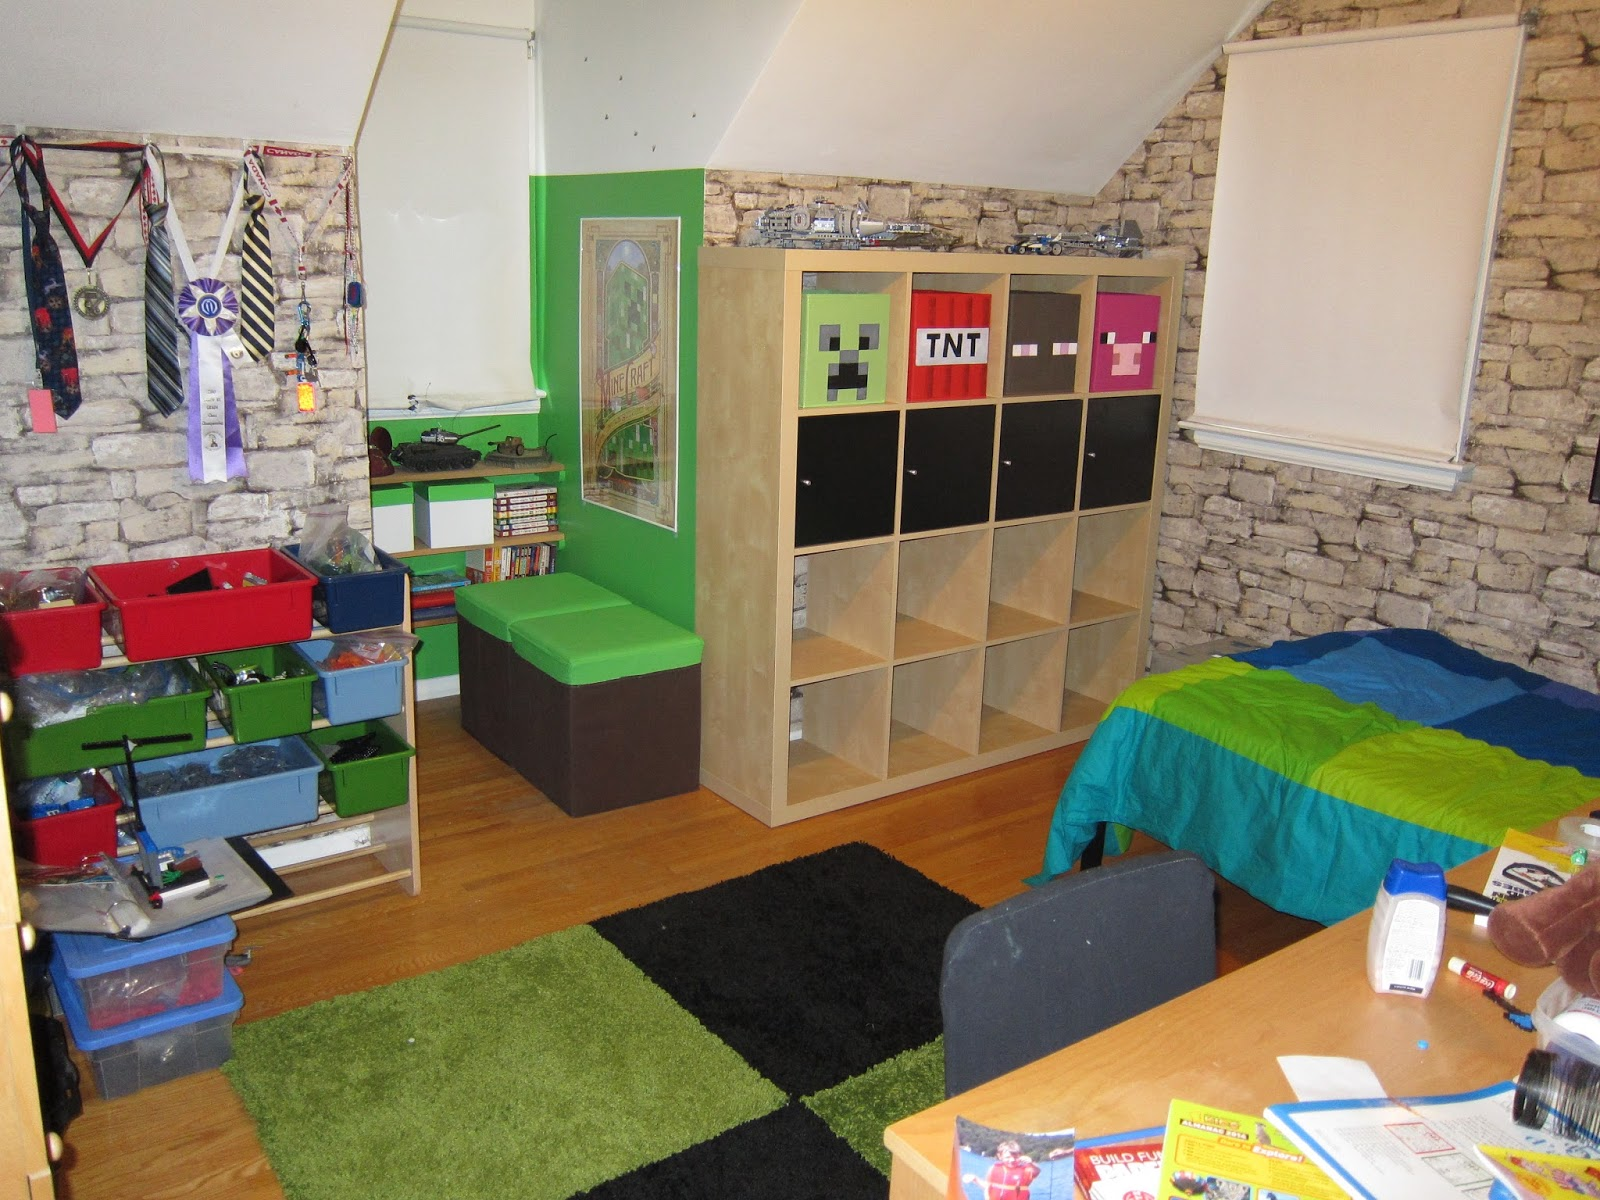 goldilocks and the four bears brennan's minecraft bedroom